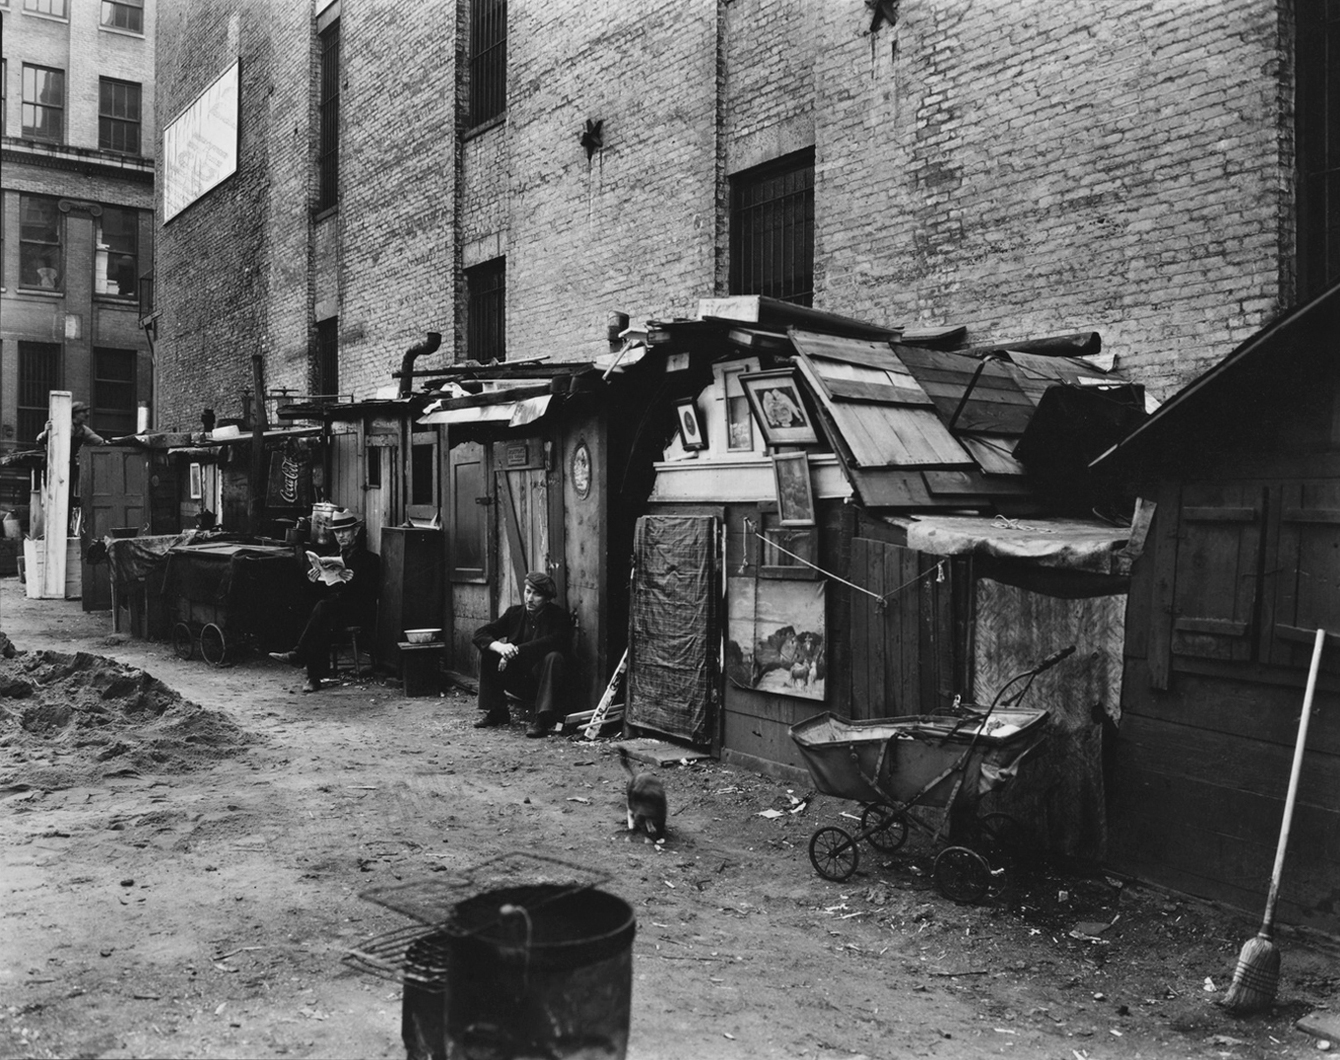 Huts and unemployed in West Houston and Mercer St by Berenice Abbott in Manhattan in 1935